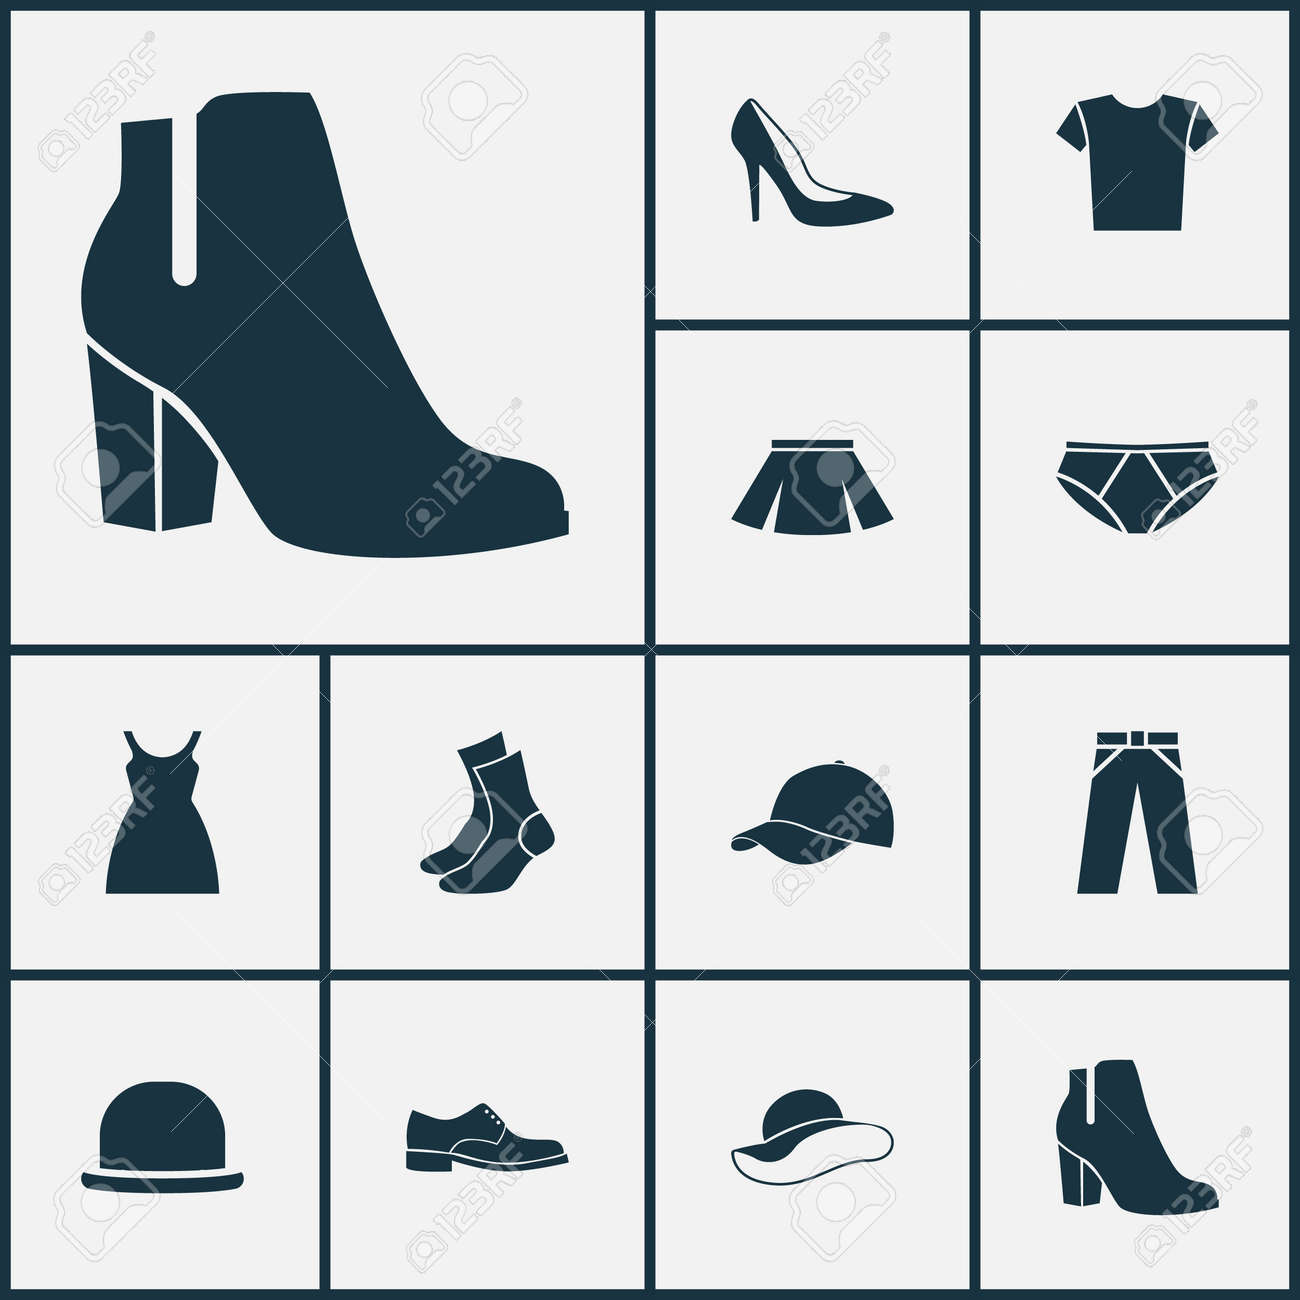 4c8a679b Garment Icons Set. Collection Of Casual, Female Winter Shoes, Trilby And  Other Elements